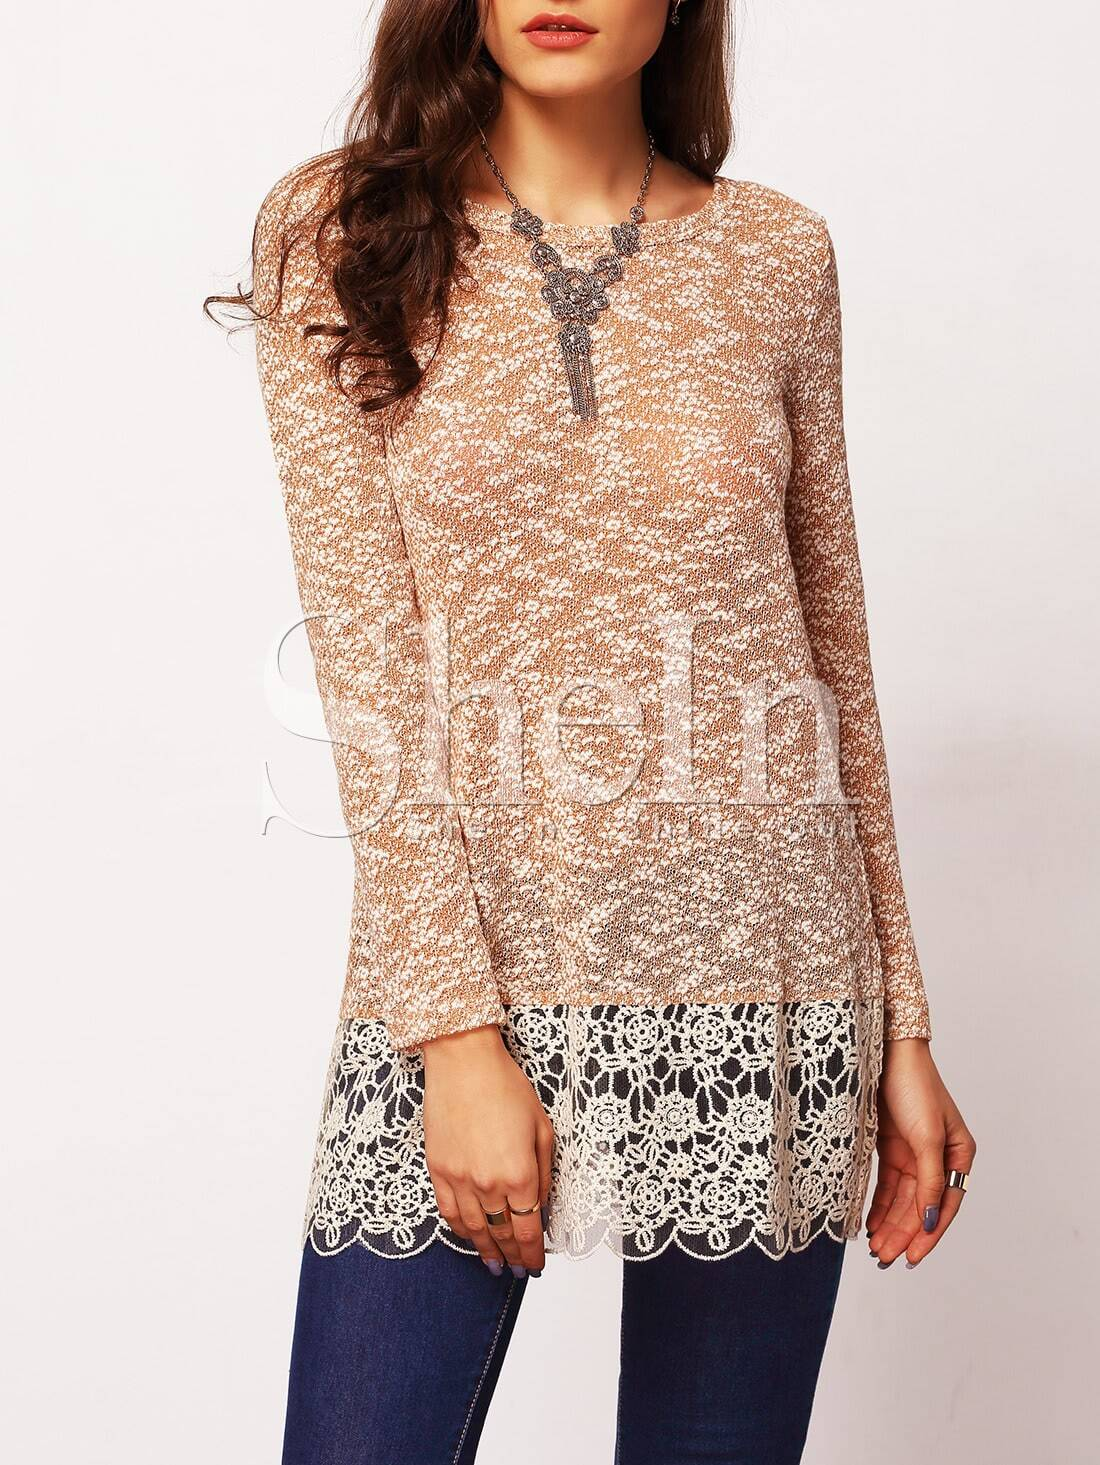 Beige Long Sleeve With Lace Blouse blouse151105701